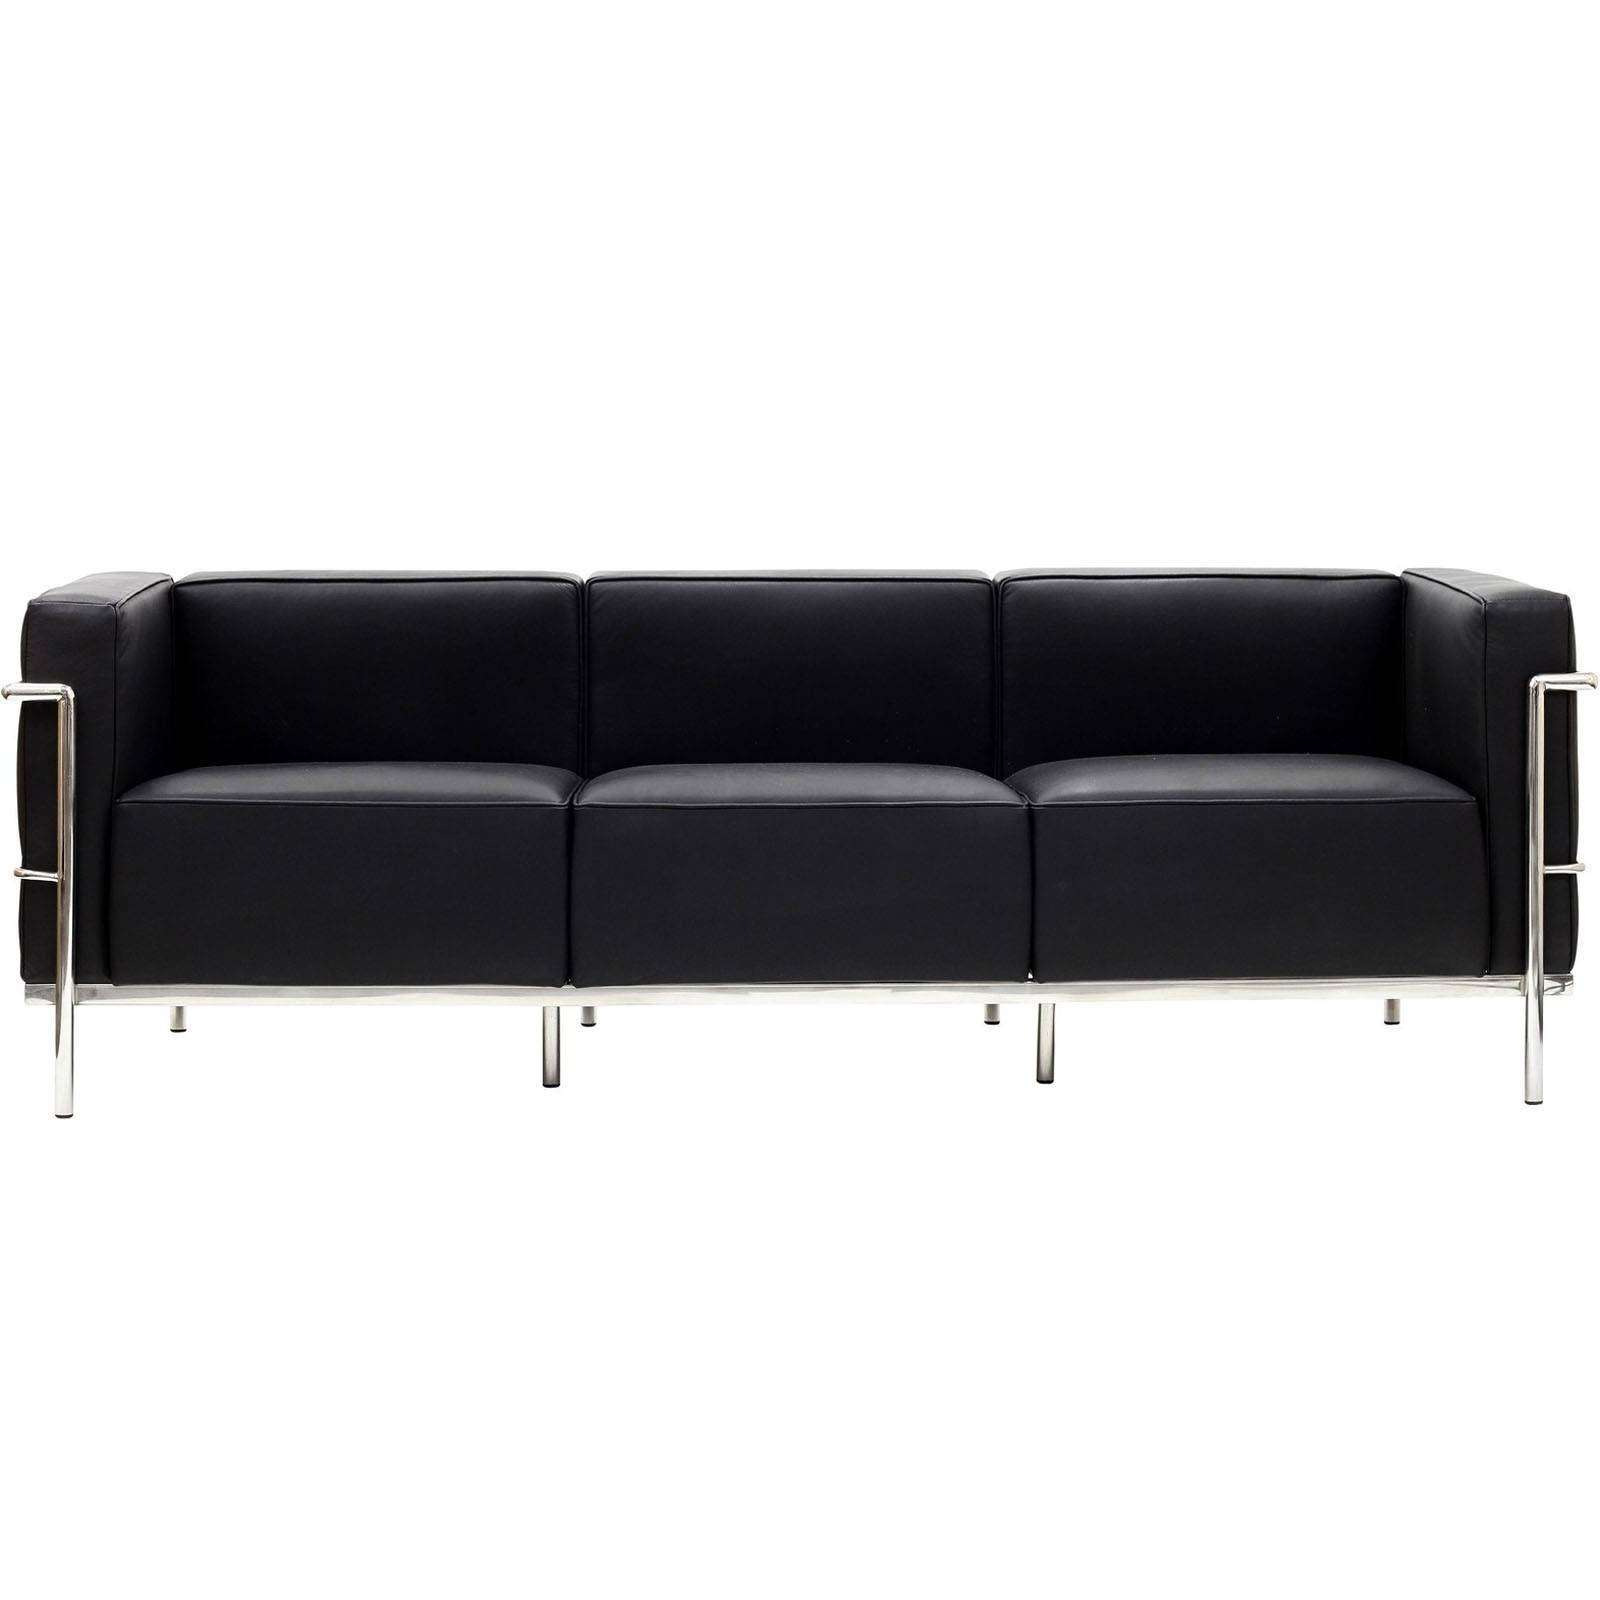 Le corbusier style lc3 sofa leather for Le corbusier sofa nachbau